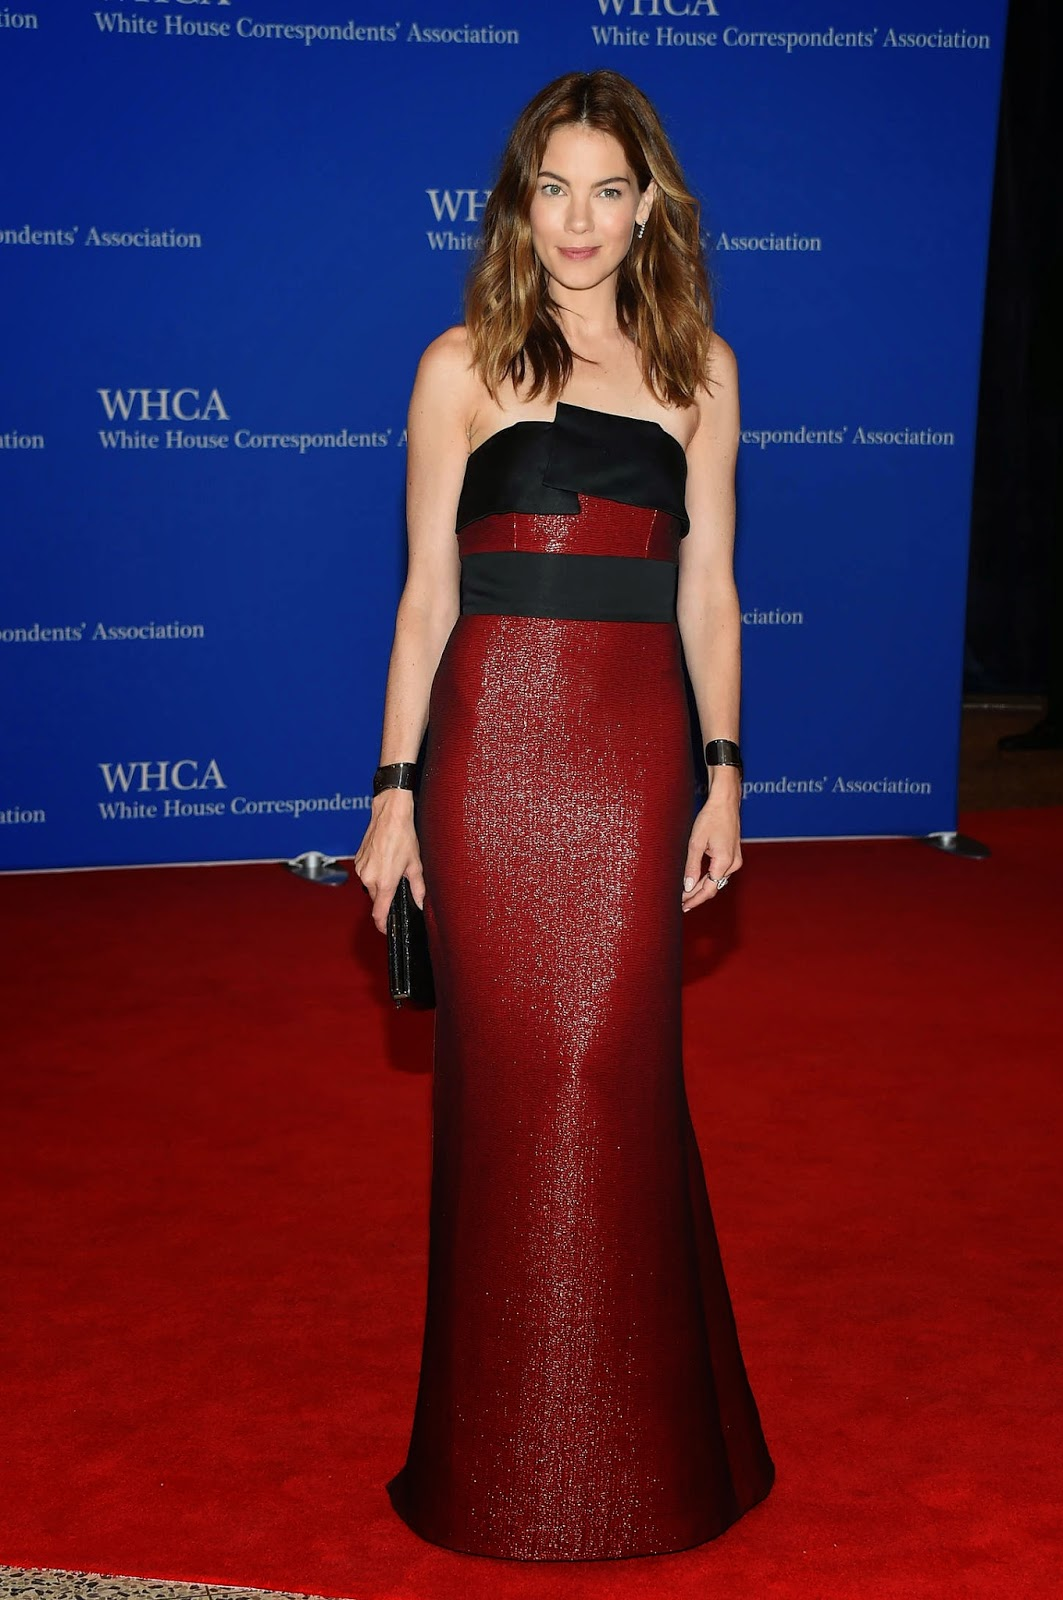 Michelle Monaghan in a shimmery red and black dress at the 2015 White House Correspondents' Association Dinner